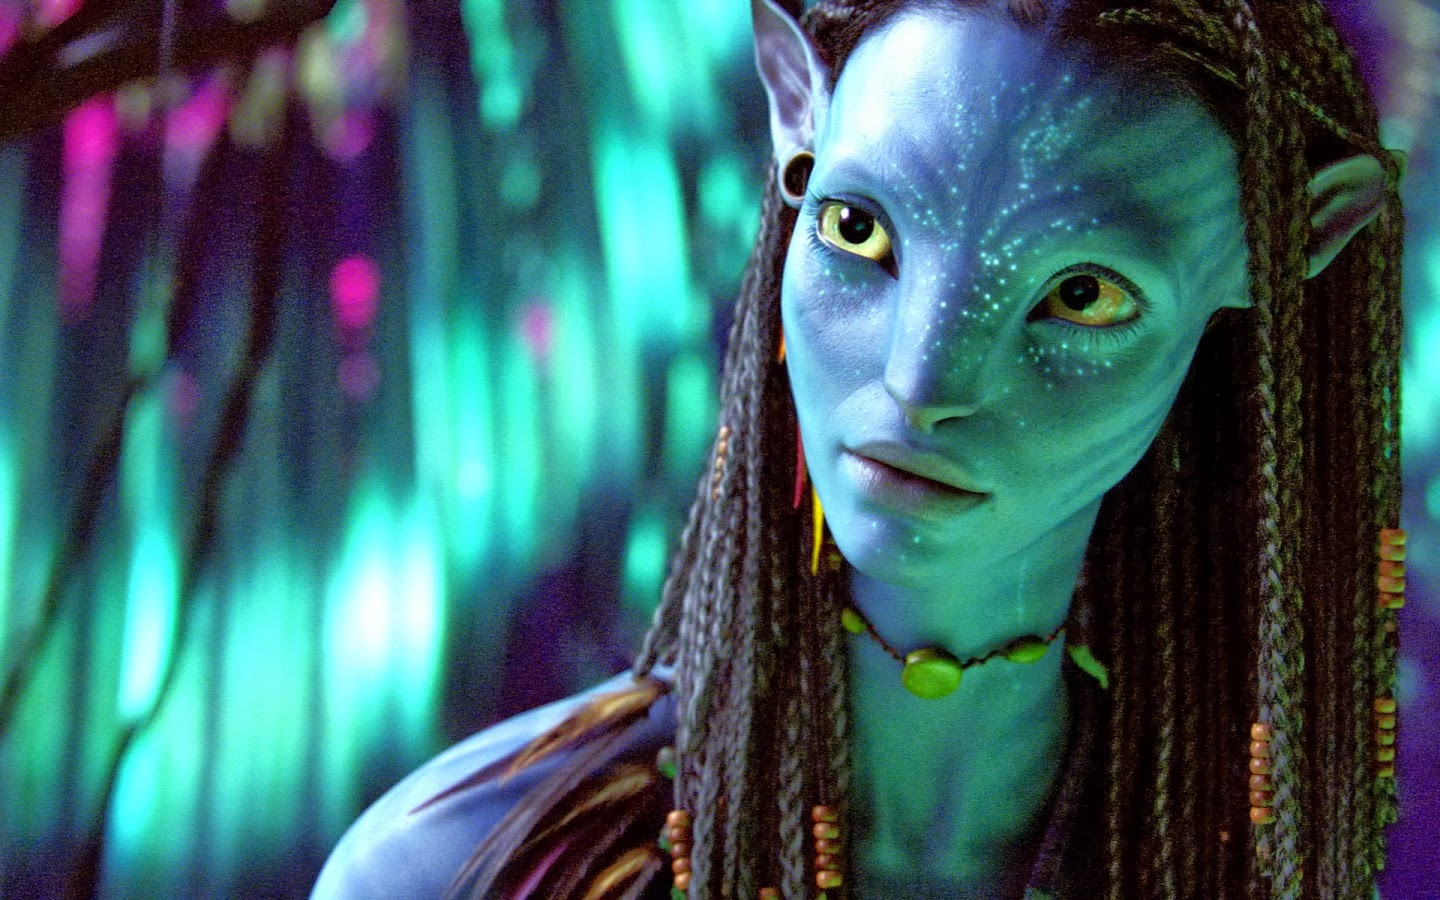 neytiri beautiful warrior in avatar wallpapers - Neytiri Beautiful Warrior in Avatar Wallpaper (1680x1050